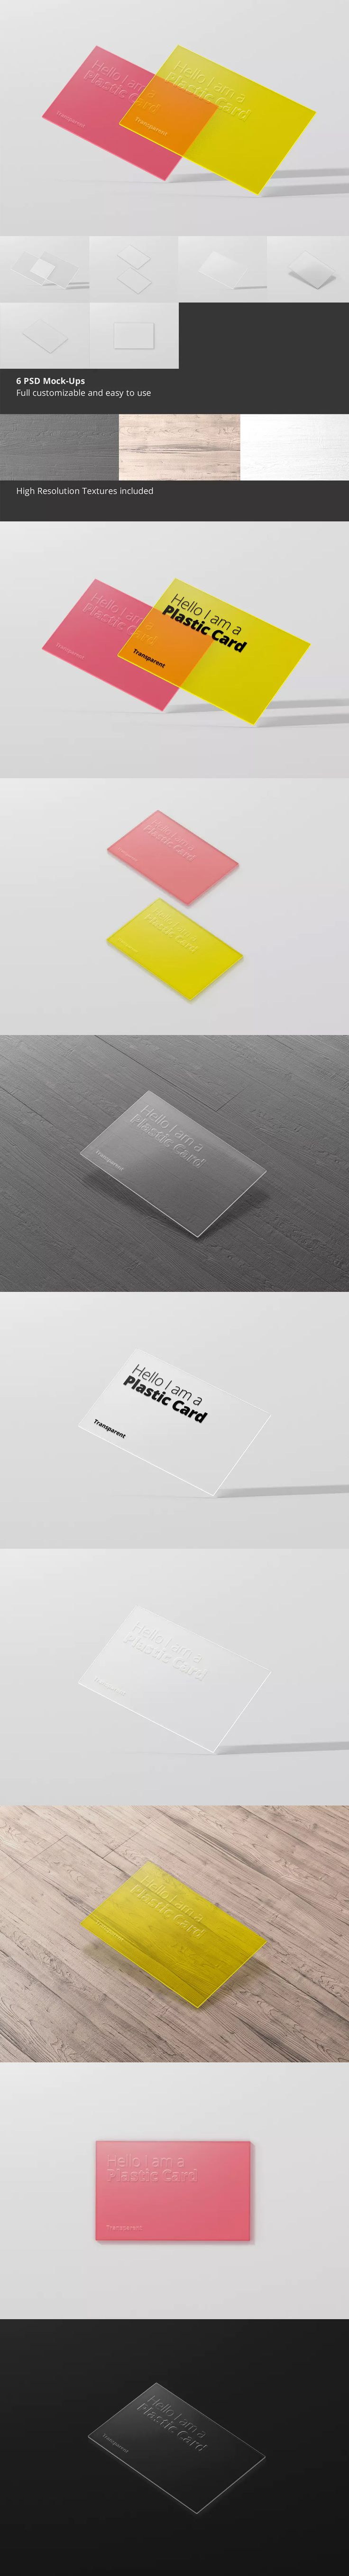 Inspirational Image Clear Business Cards Business Cards